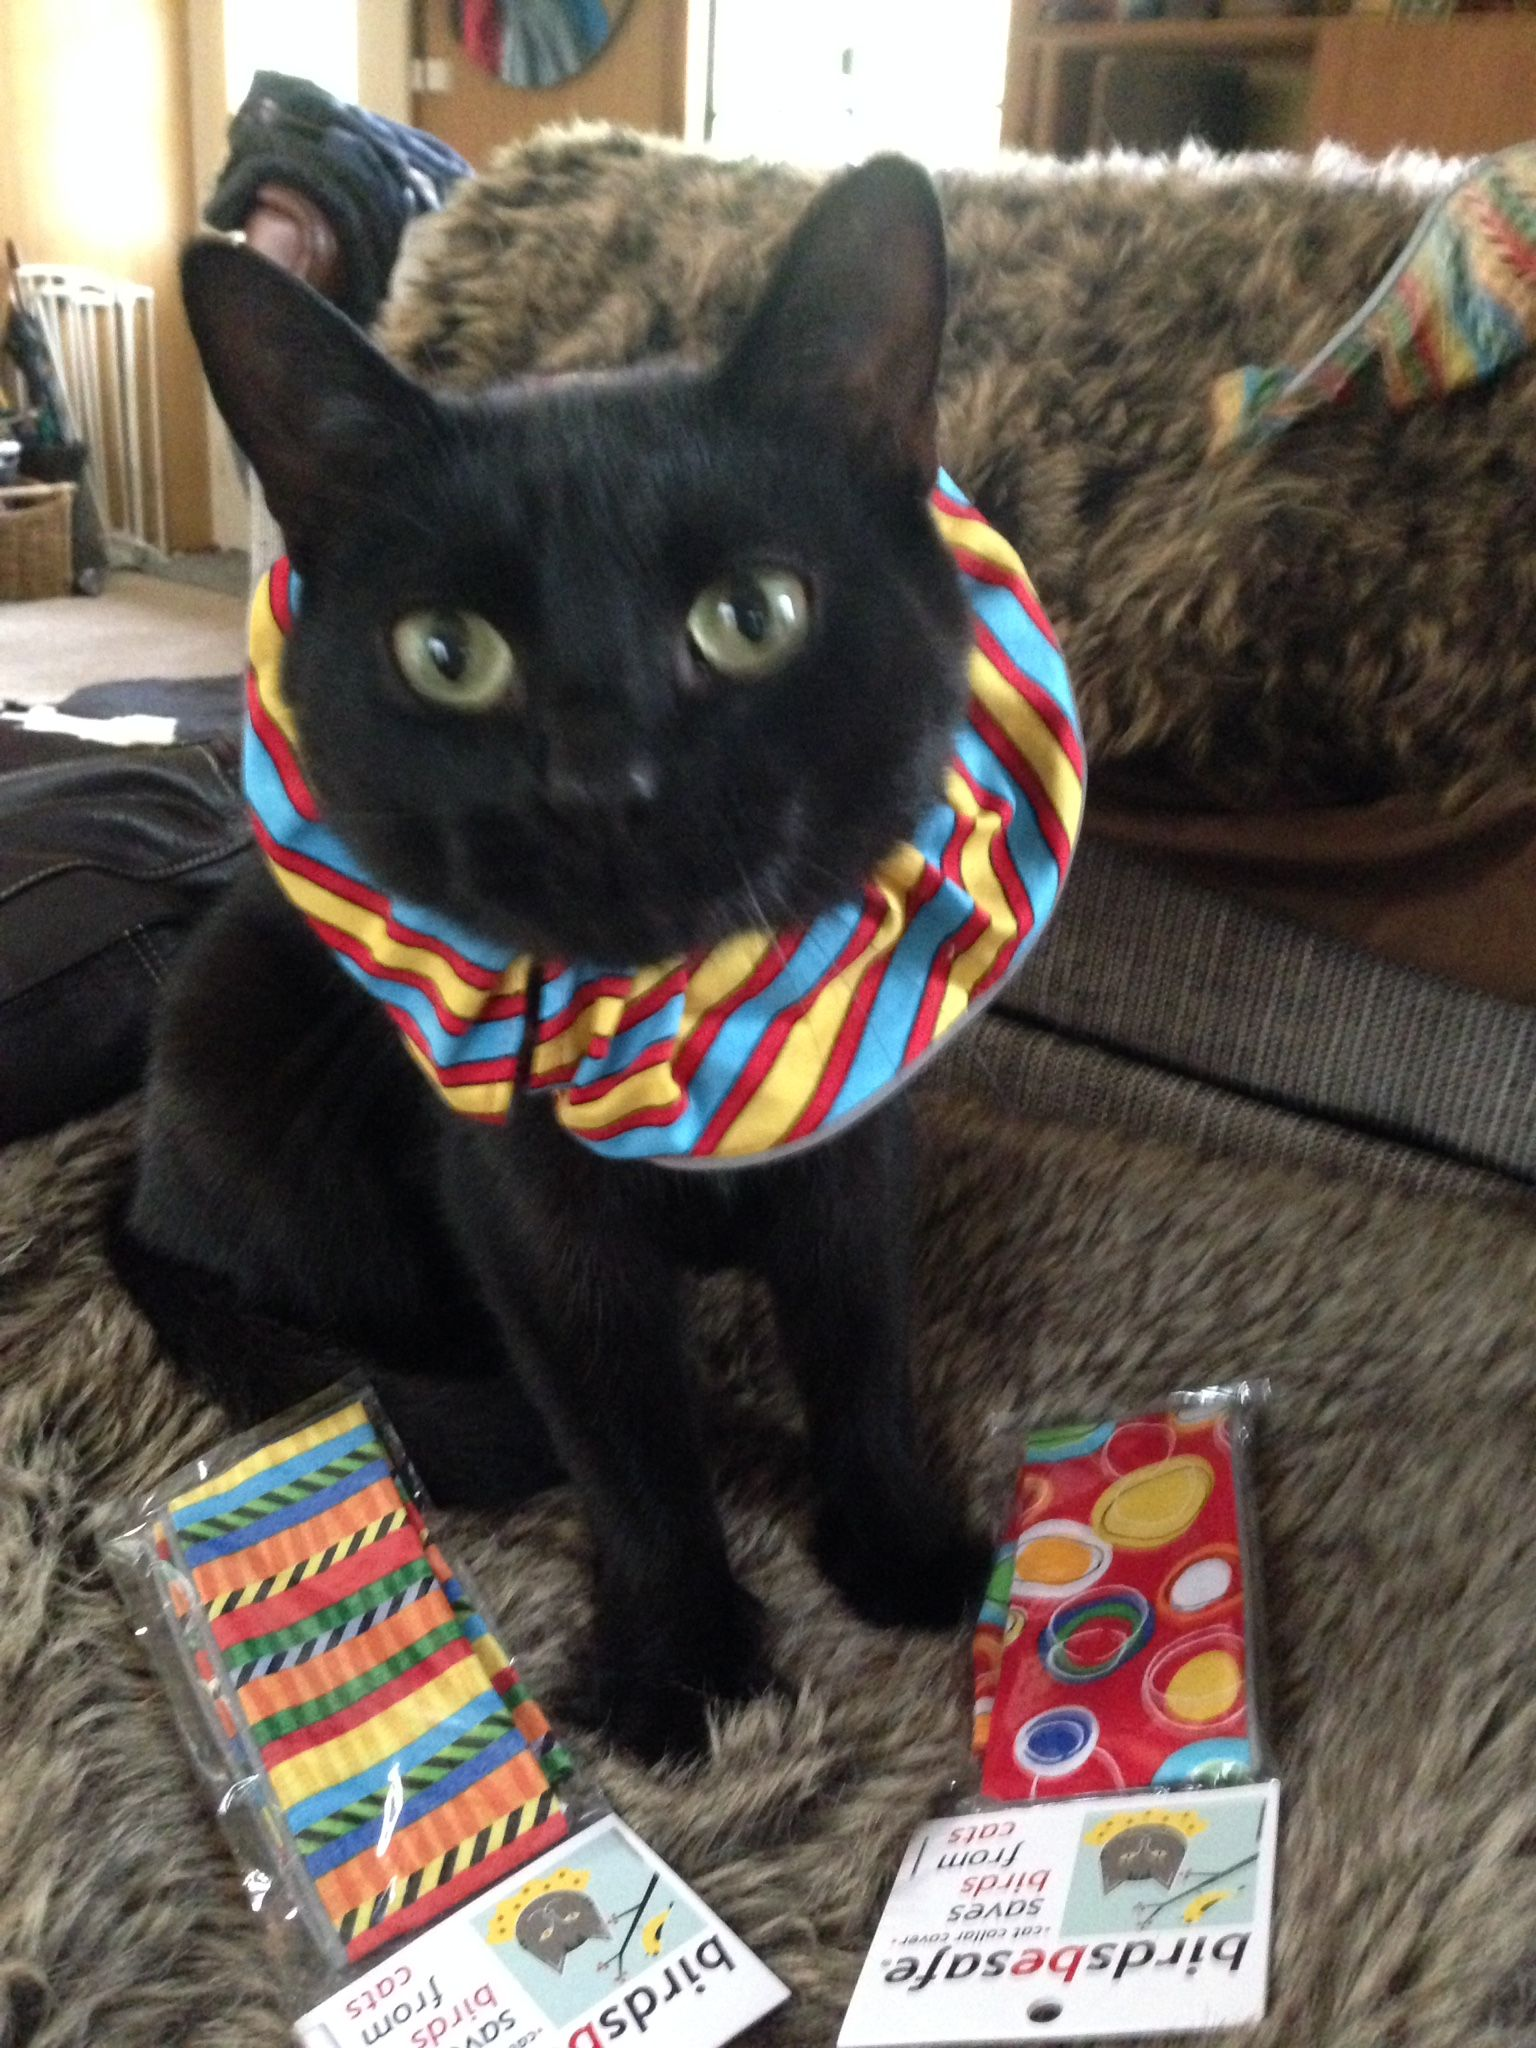 What To Wear What To Wear All This New Zealand Cat S Choices Are Bright And Birdsbesafe Brand Keeping Birds Safe Cats Cat Collars Fur Babies